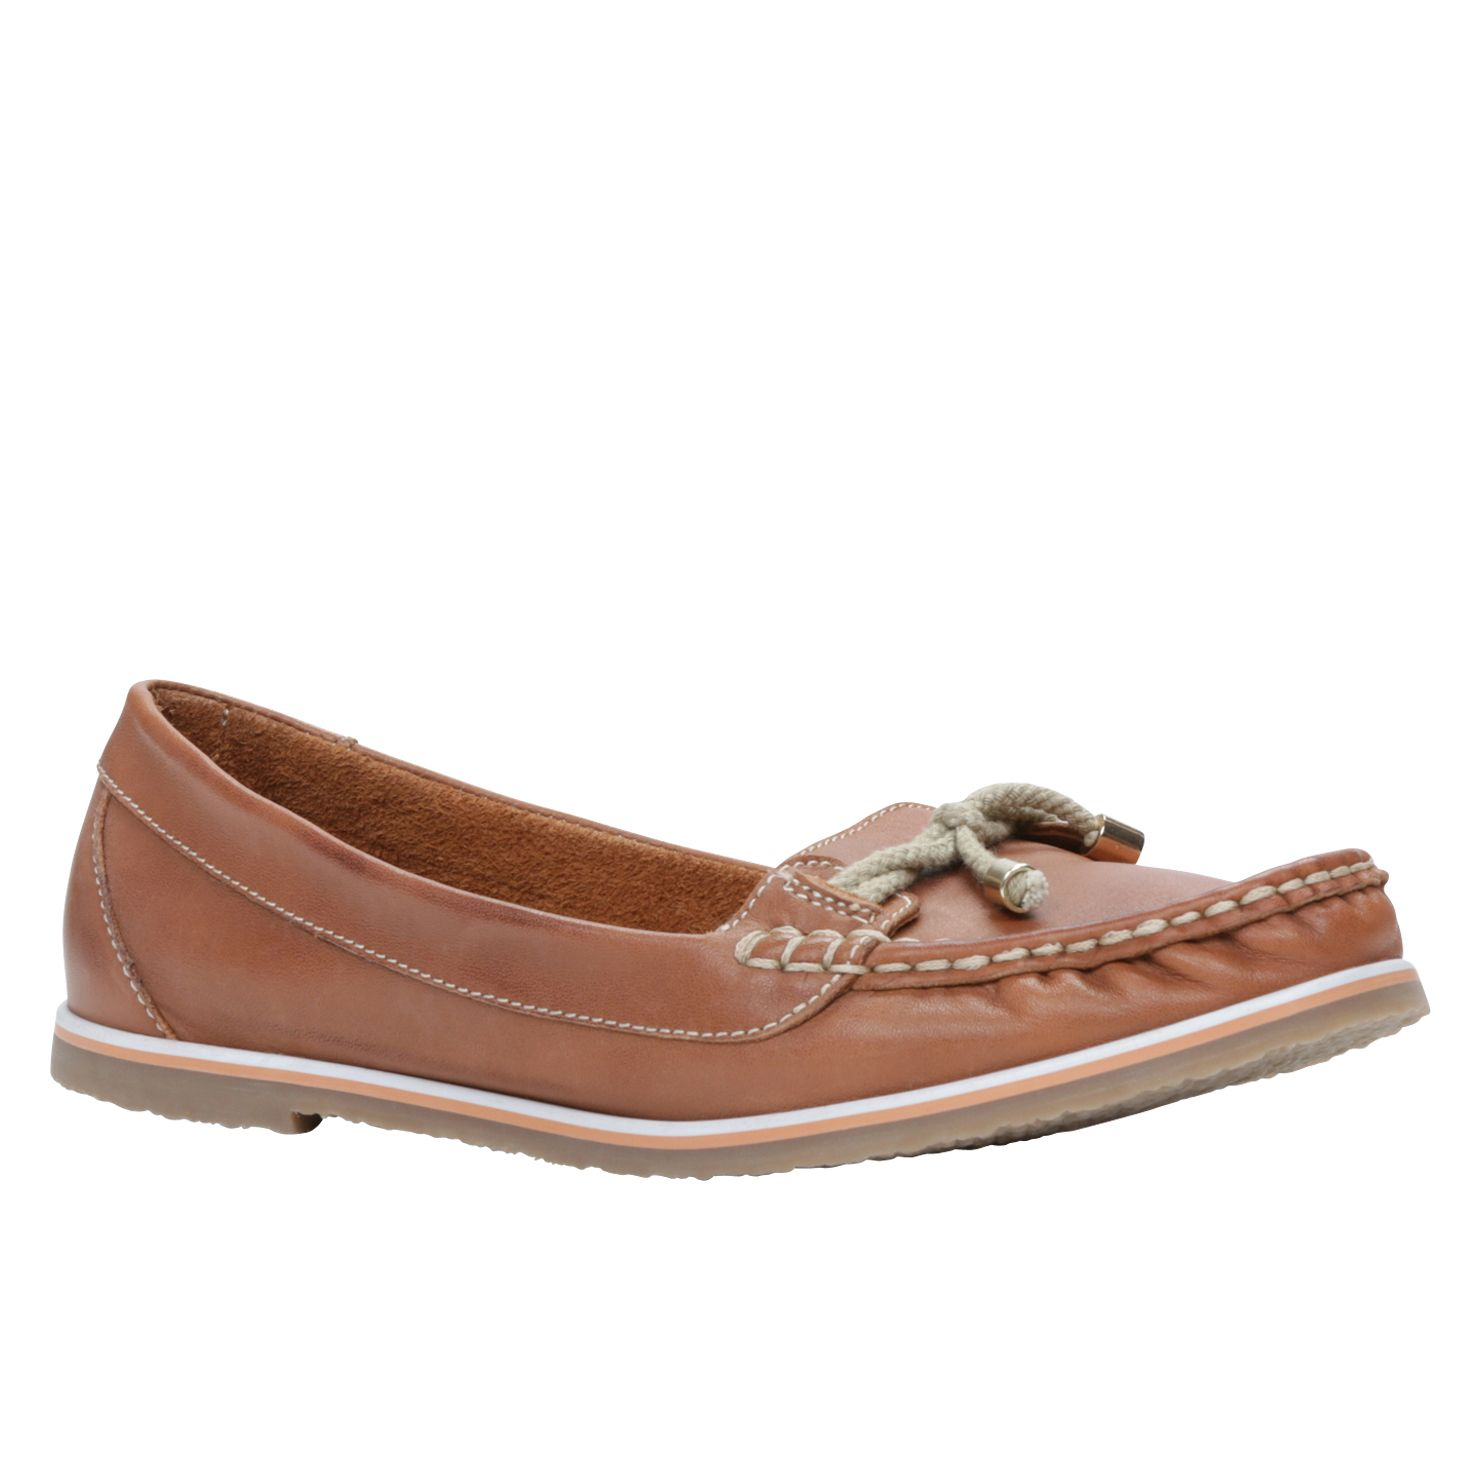 Freebaim round toe boat shoes